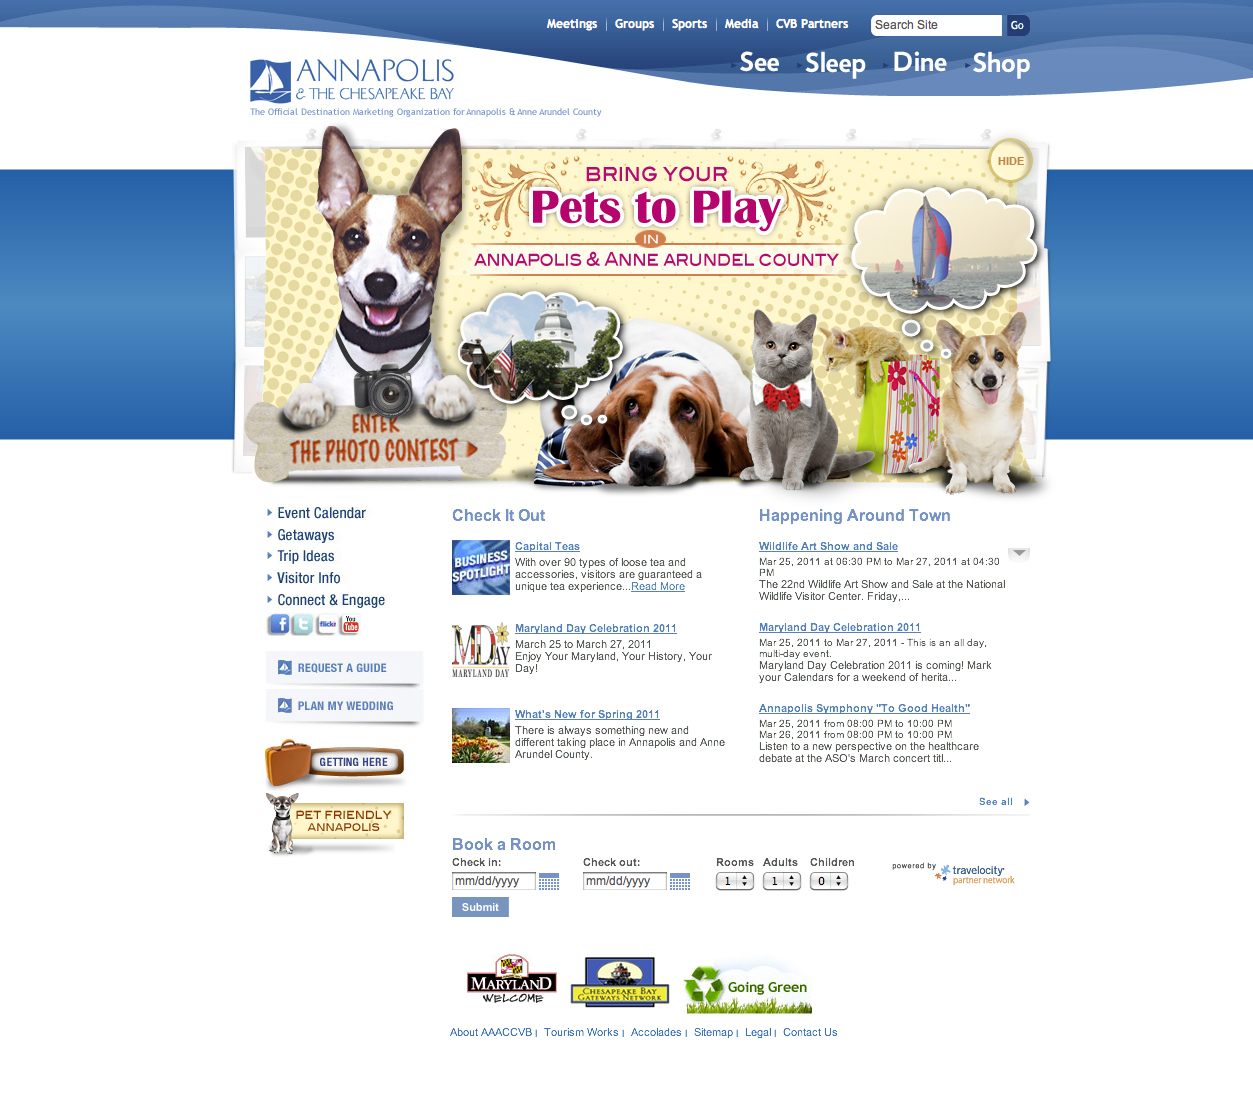 Annapolis Tourism Website - Pet Friendly Campaign